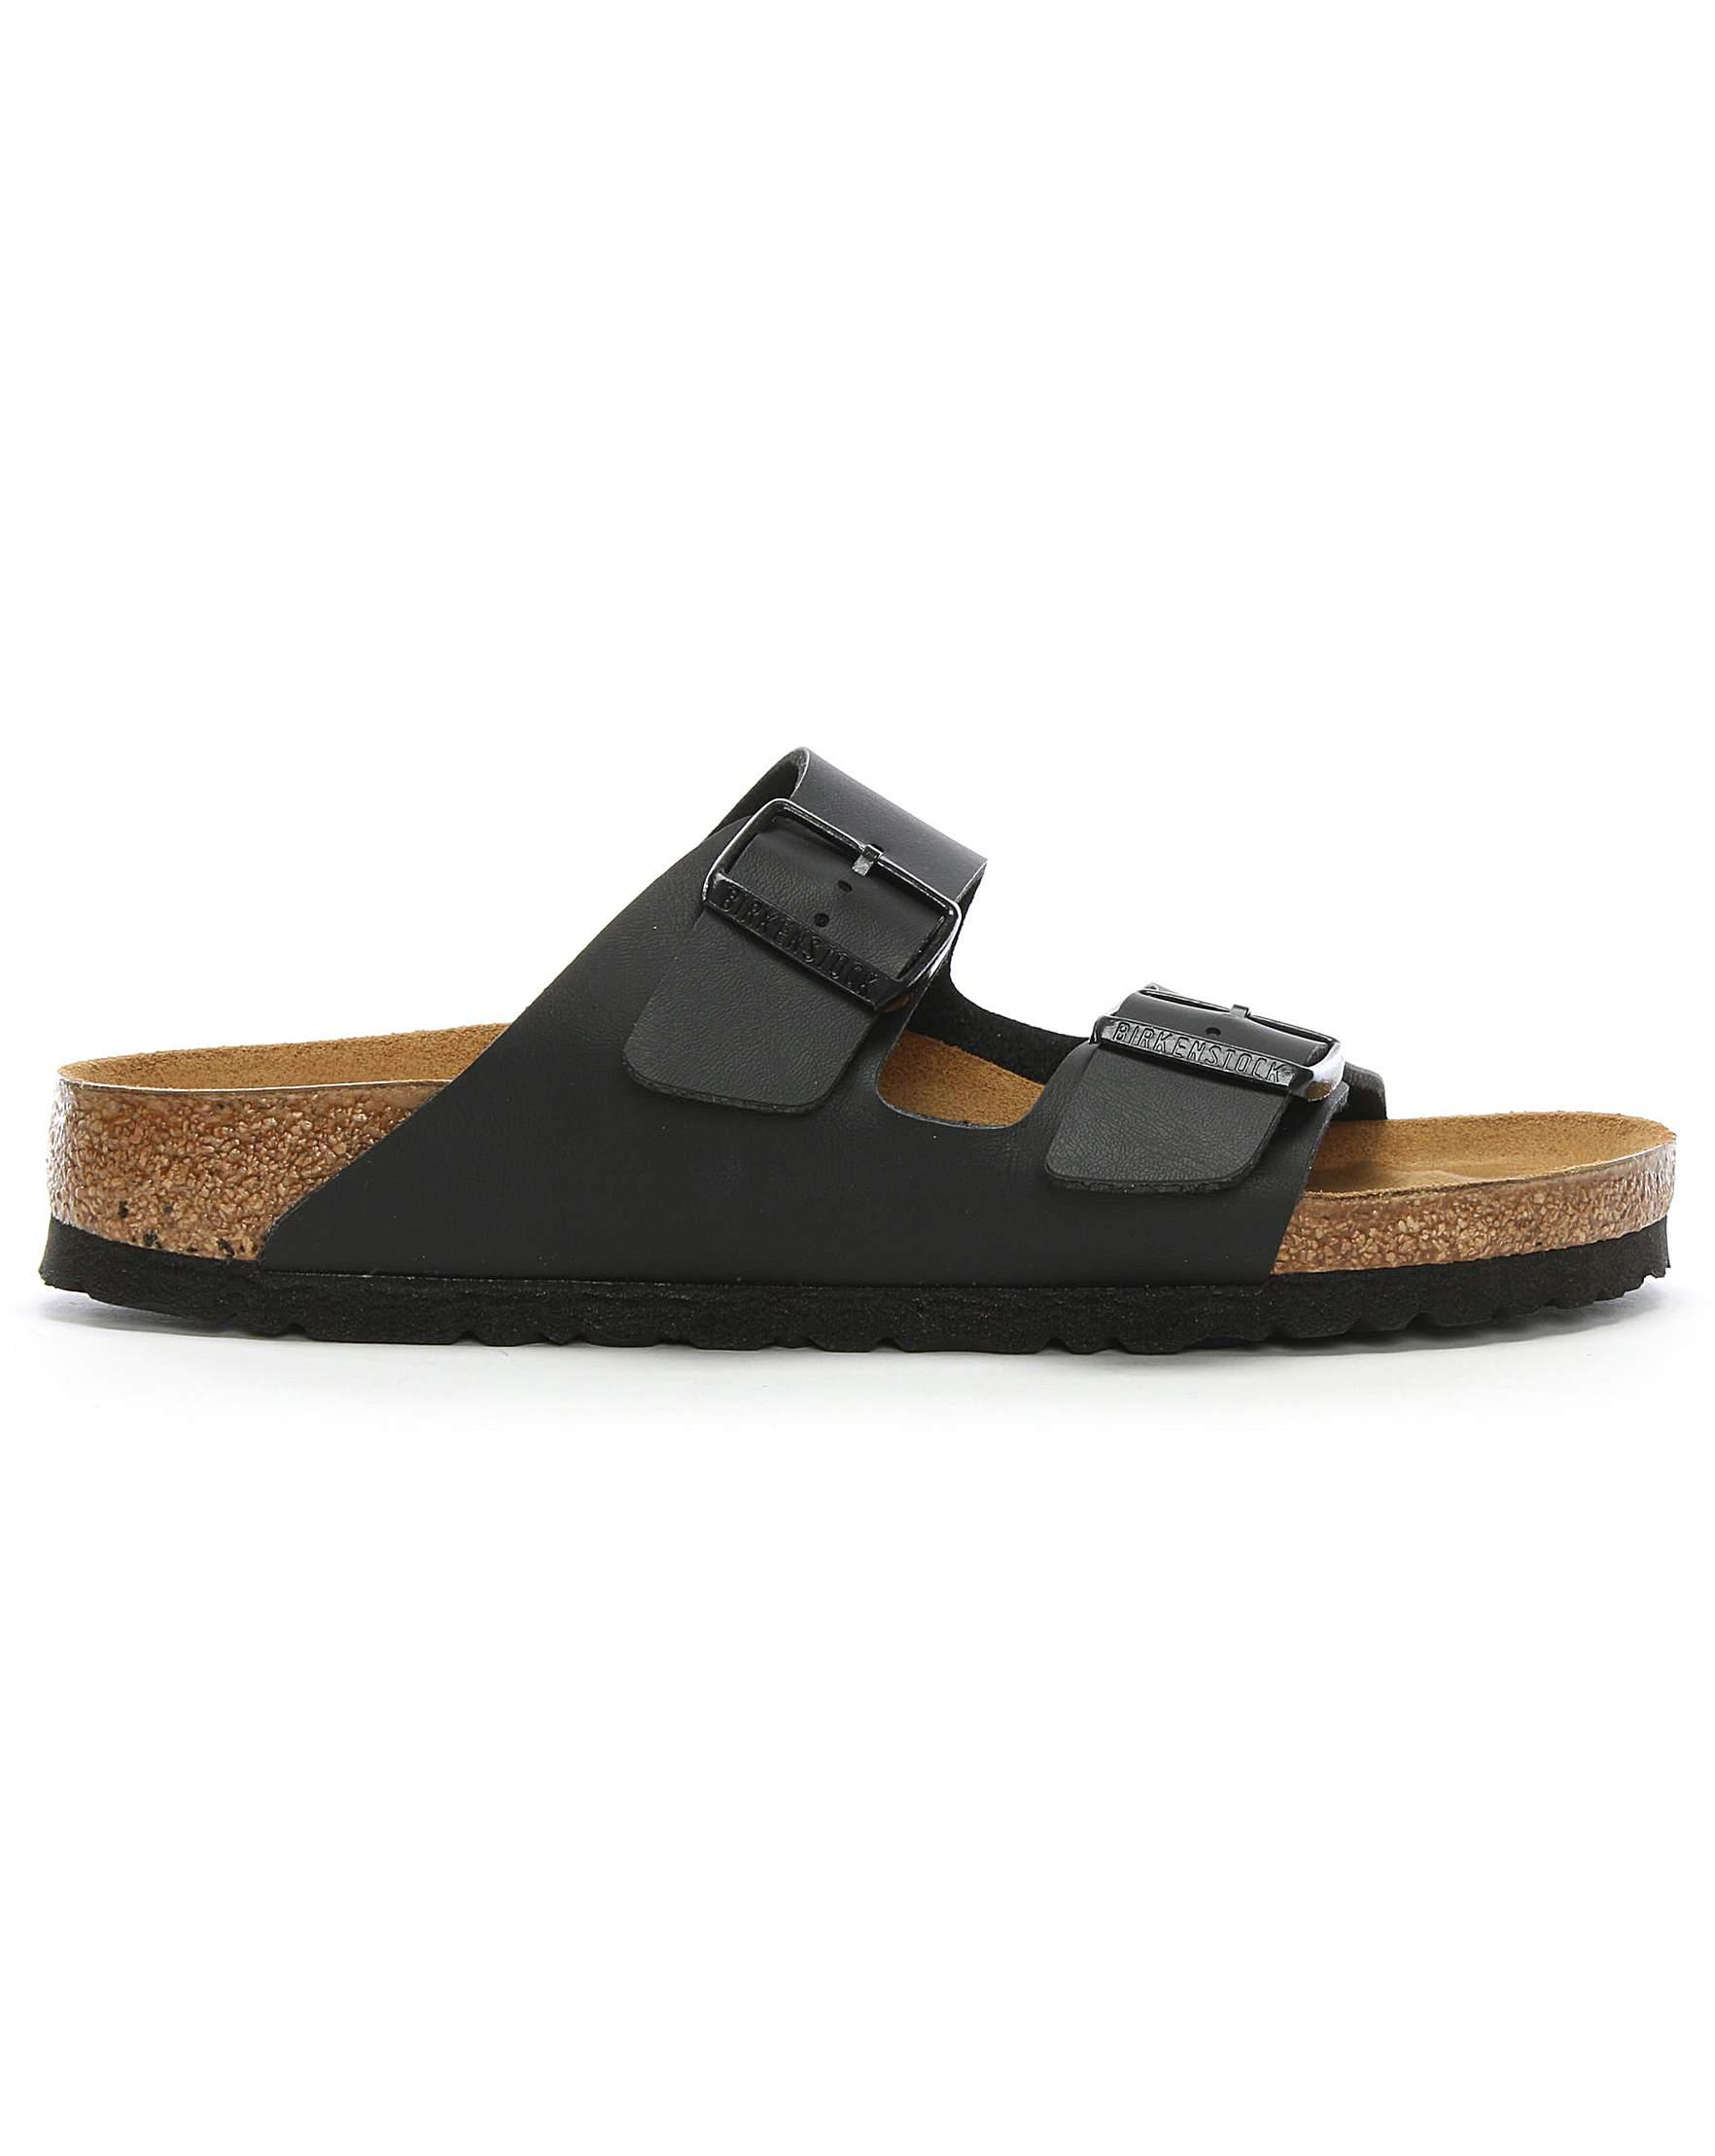 4d9f8386ec4b Birkenstock Arizona Birko-flor Mules in Black for Men - Lyst